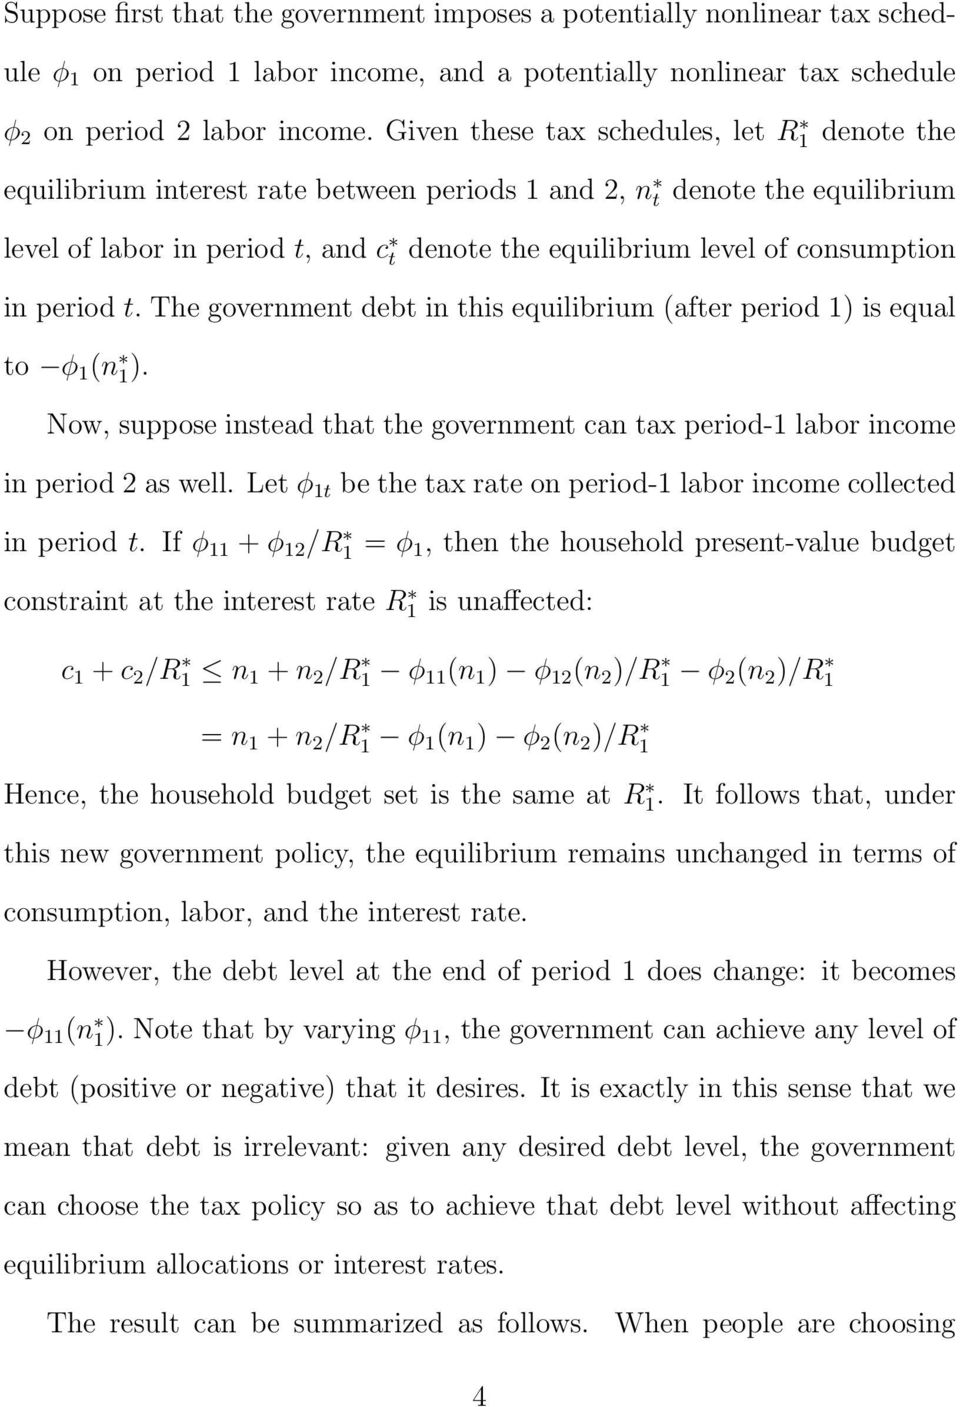 consumption in period t. The government debt in this equilibrium (after period 1) is equal to φ 1 (n 1). Now, suppose instead that the government can tax period-1 labor income in period 2 as well.